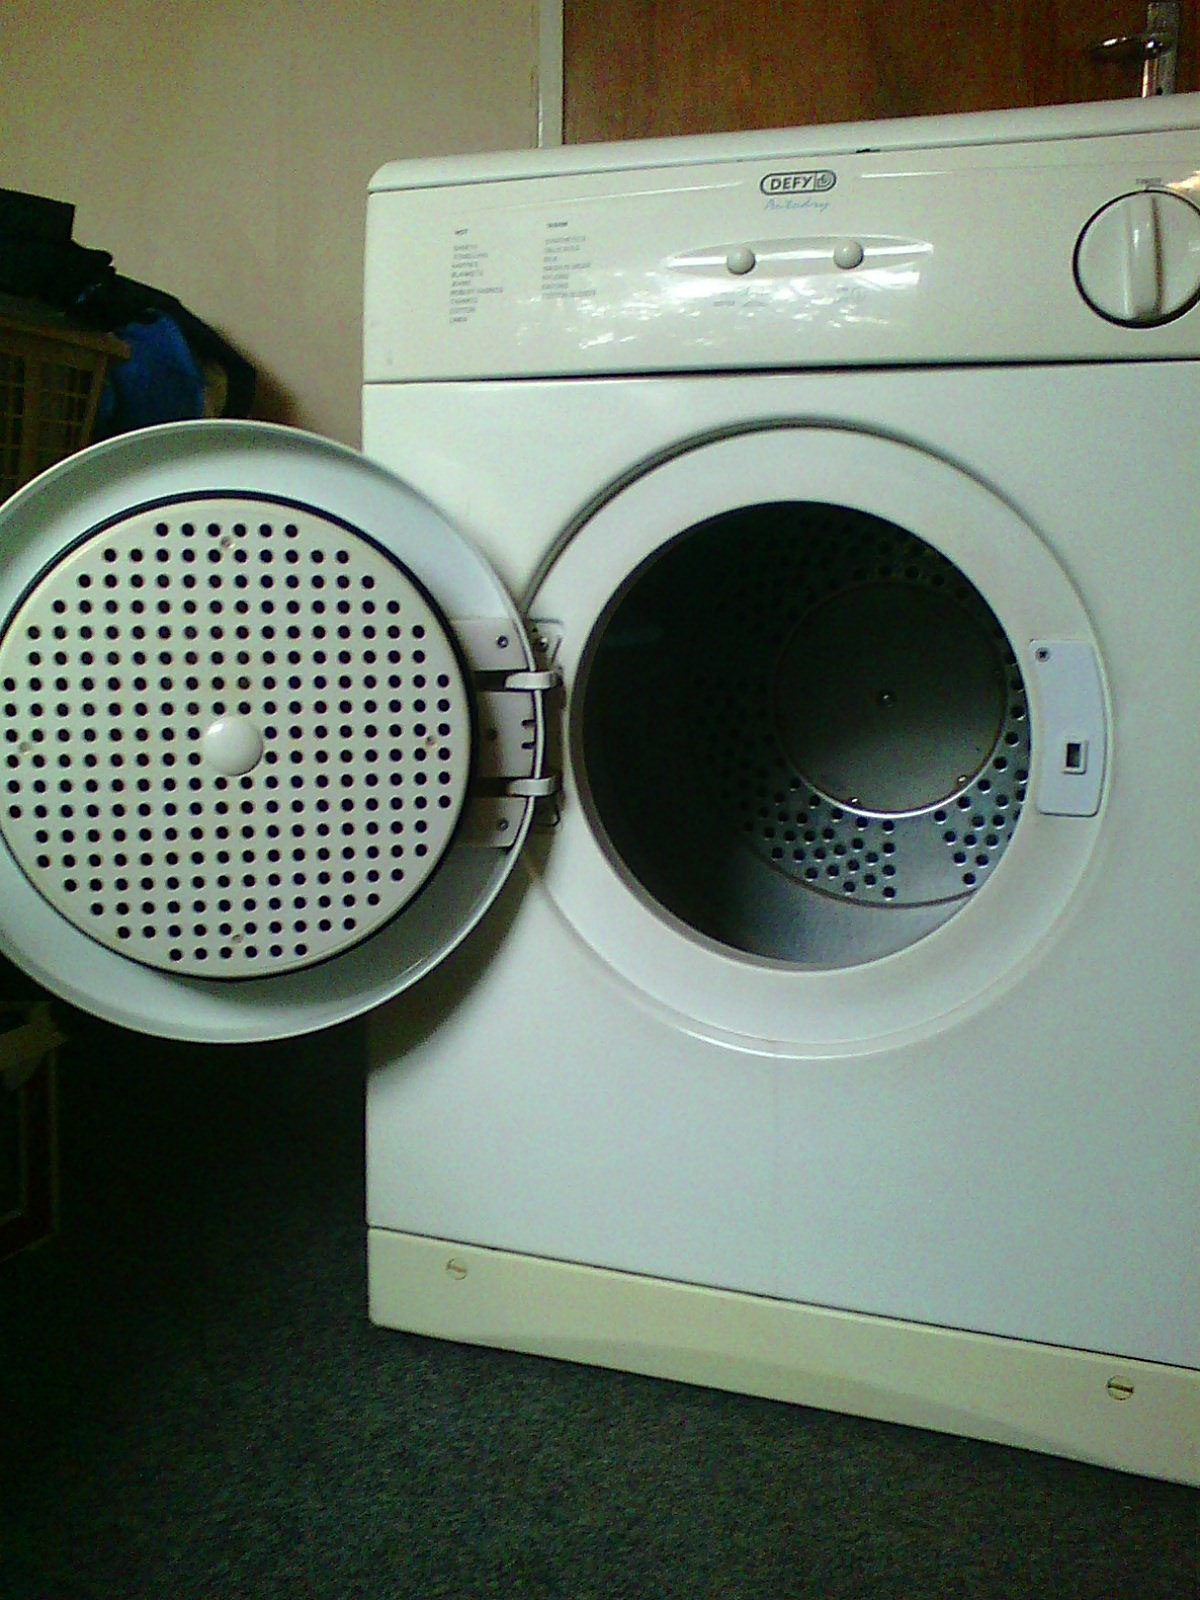 Tumble driers repaired and serviced